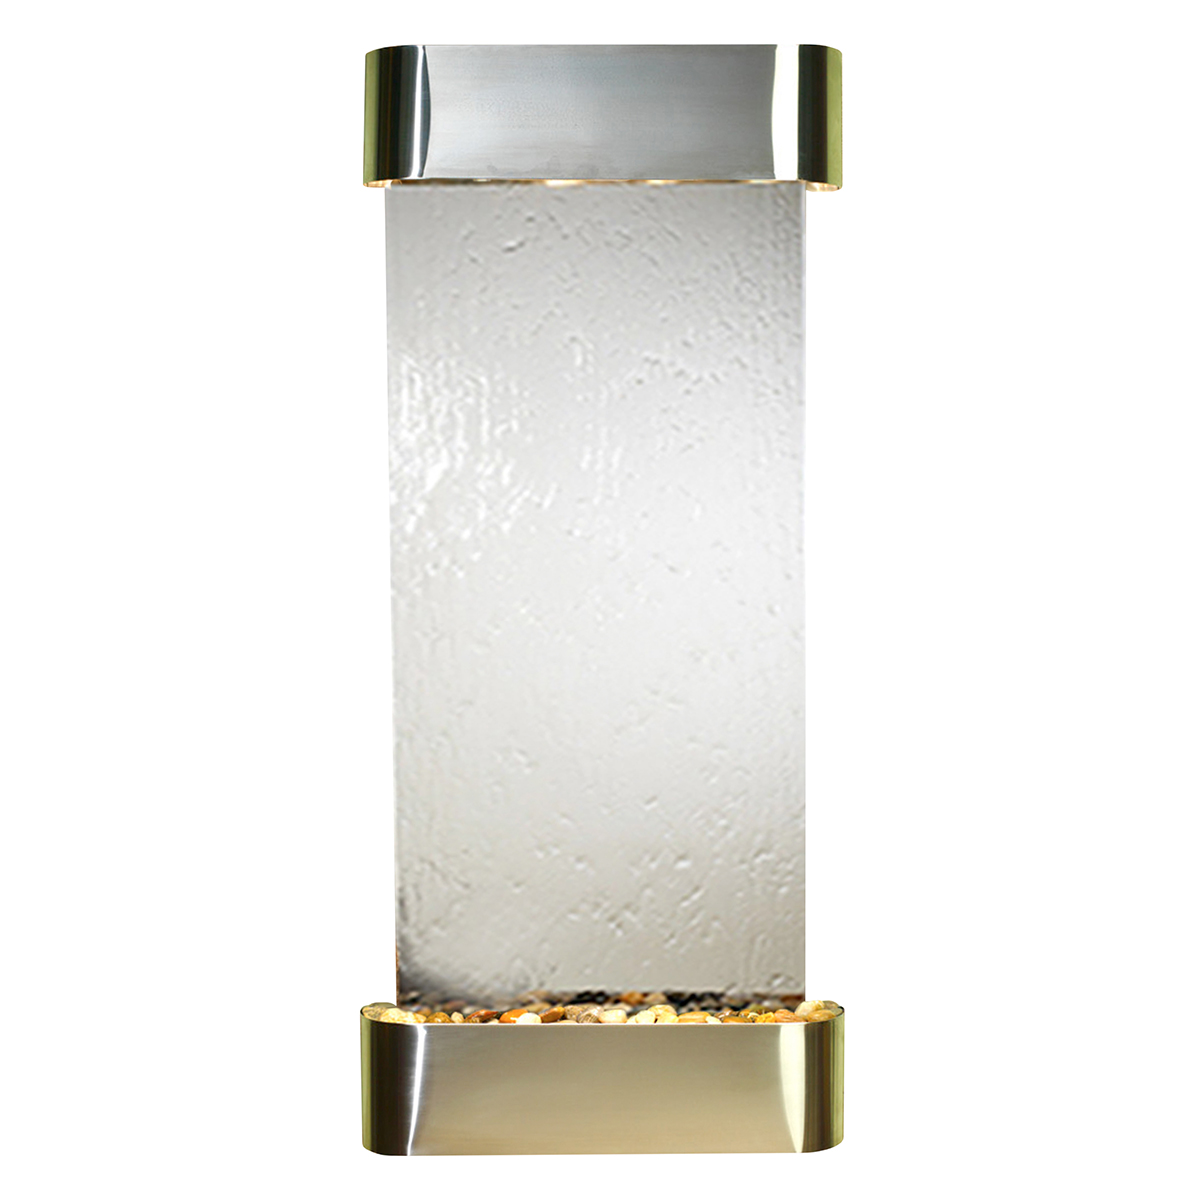 Inspiration Falls Fountain Rounded Silver Mirror Photo